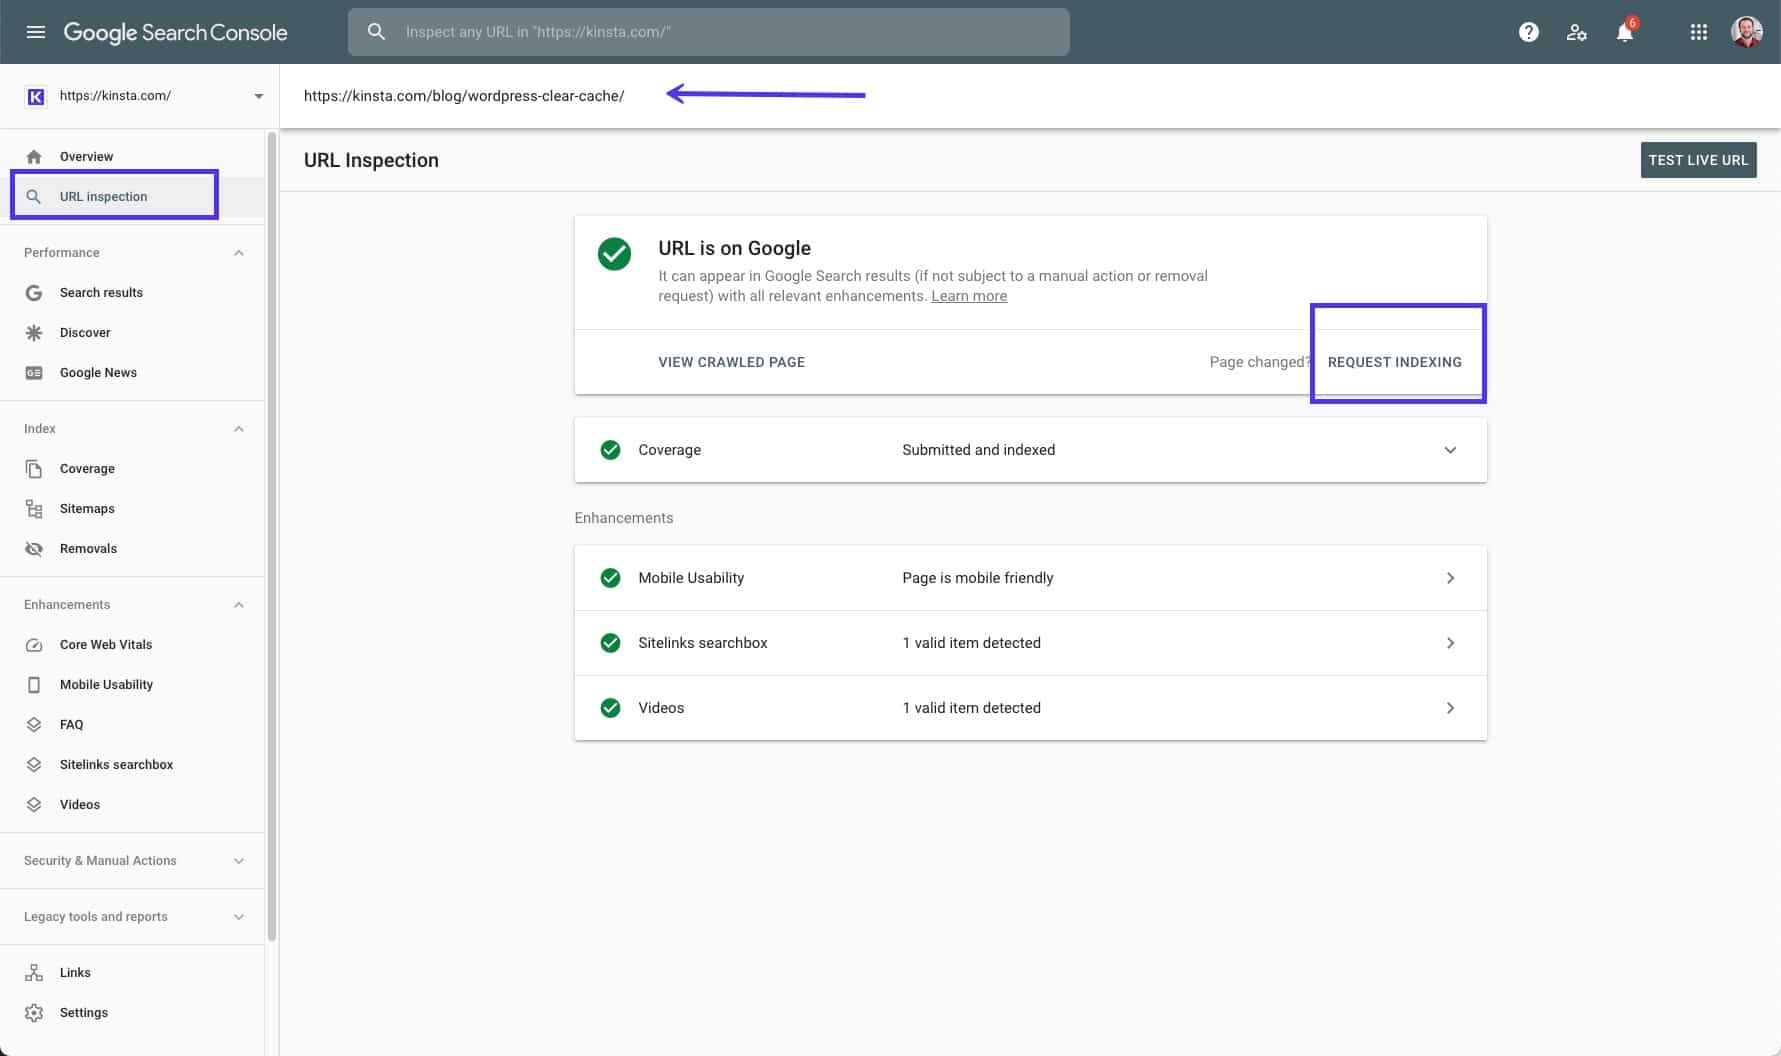 The URL Inspection tool in Google Search Console